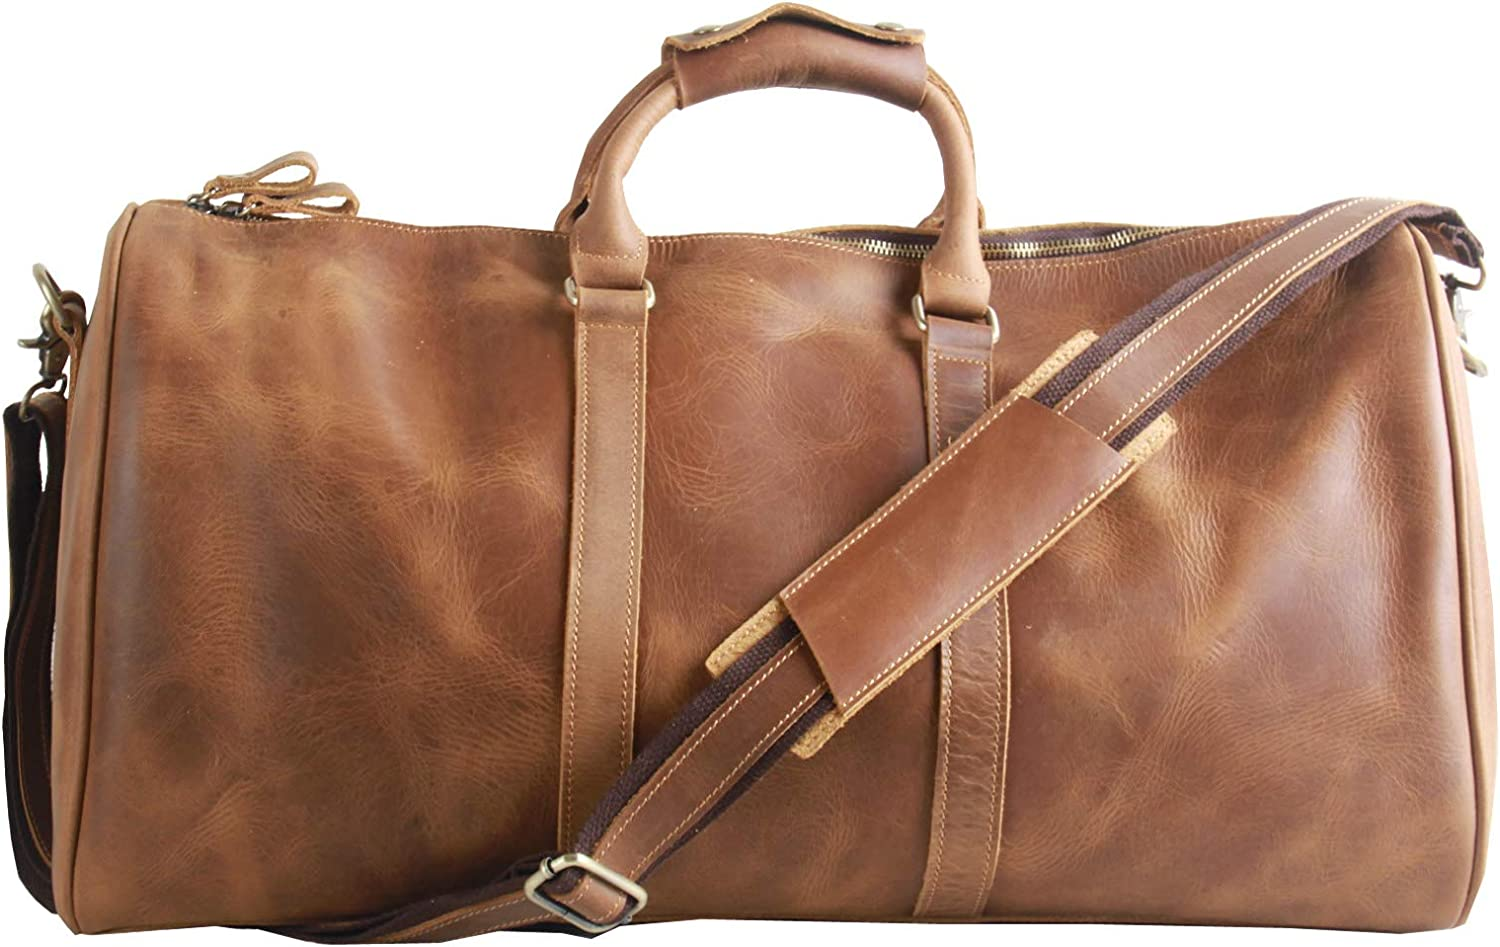 AKGOO Leather Duffel Bag For Men 21 Overnight Weekender Travel Carry On Luggage Bags Handbag Holdall Brown